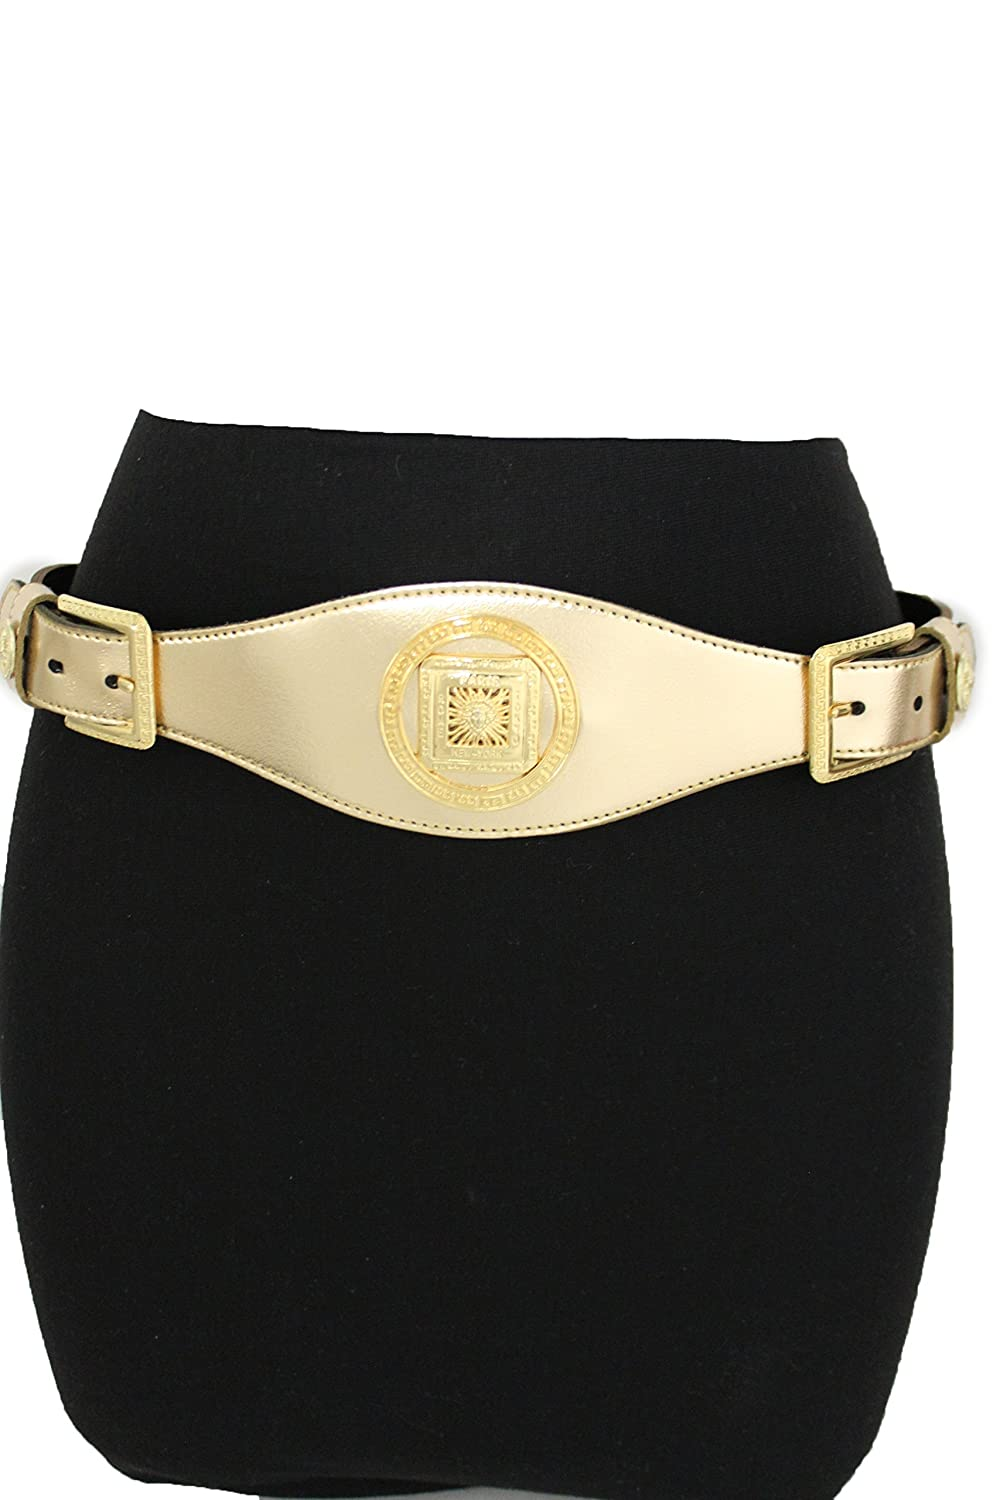 TFJ Women Trendy Fashion Belt Double Buckles Big Hot Sun Charms Metallic Gold Xs S